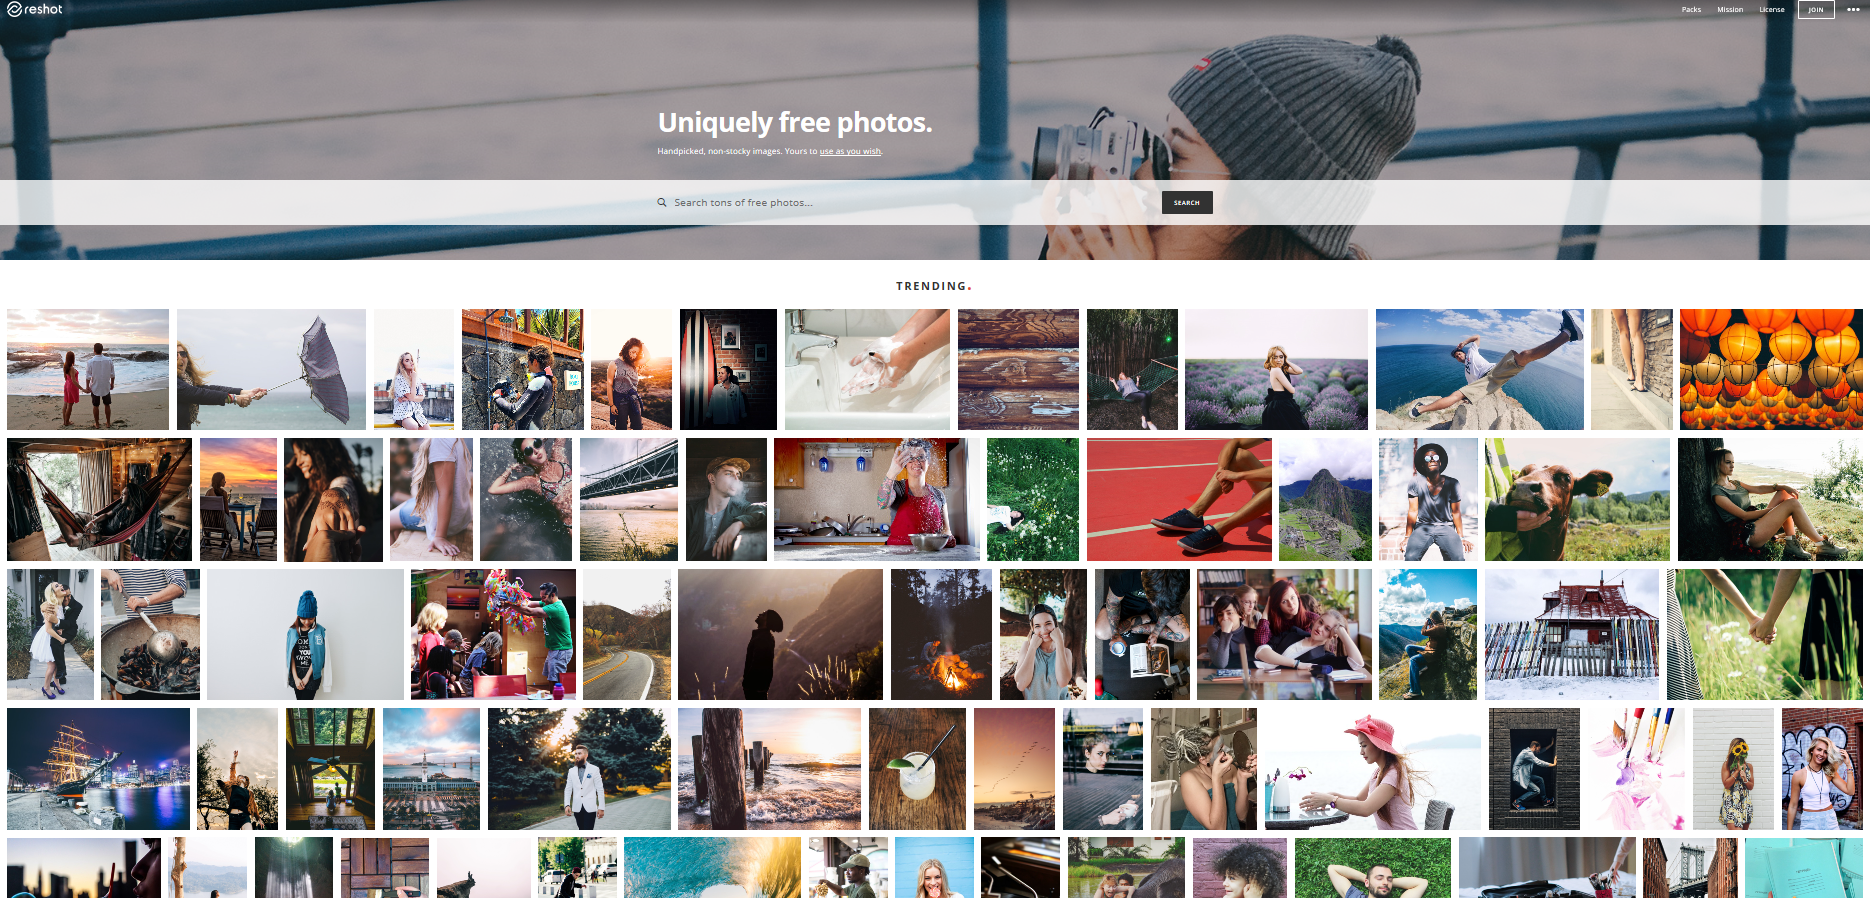 Reshot provides users with a collection of high q